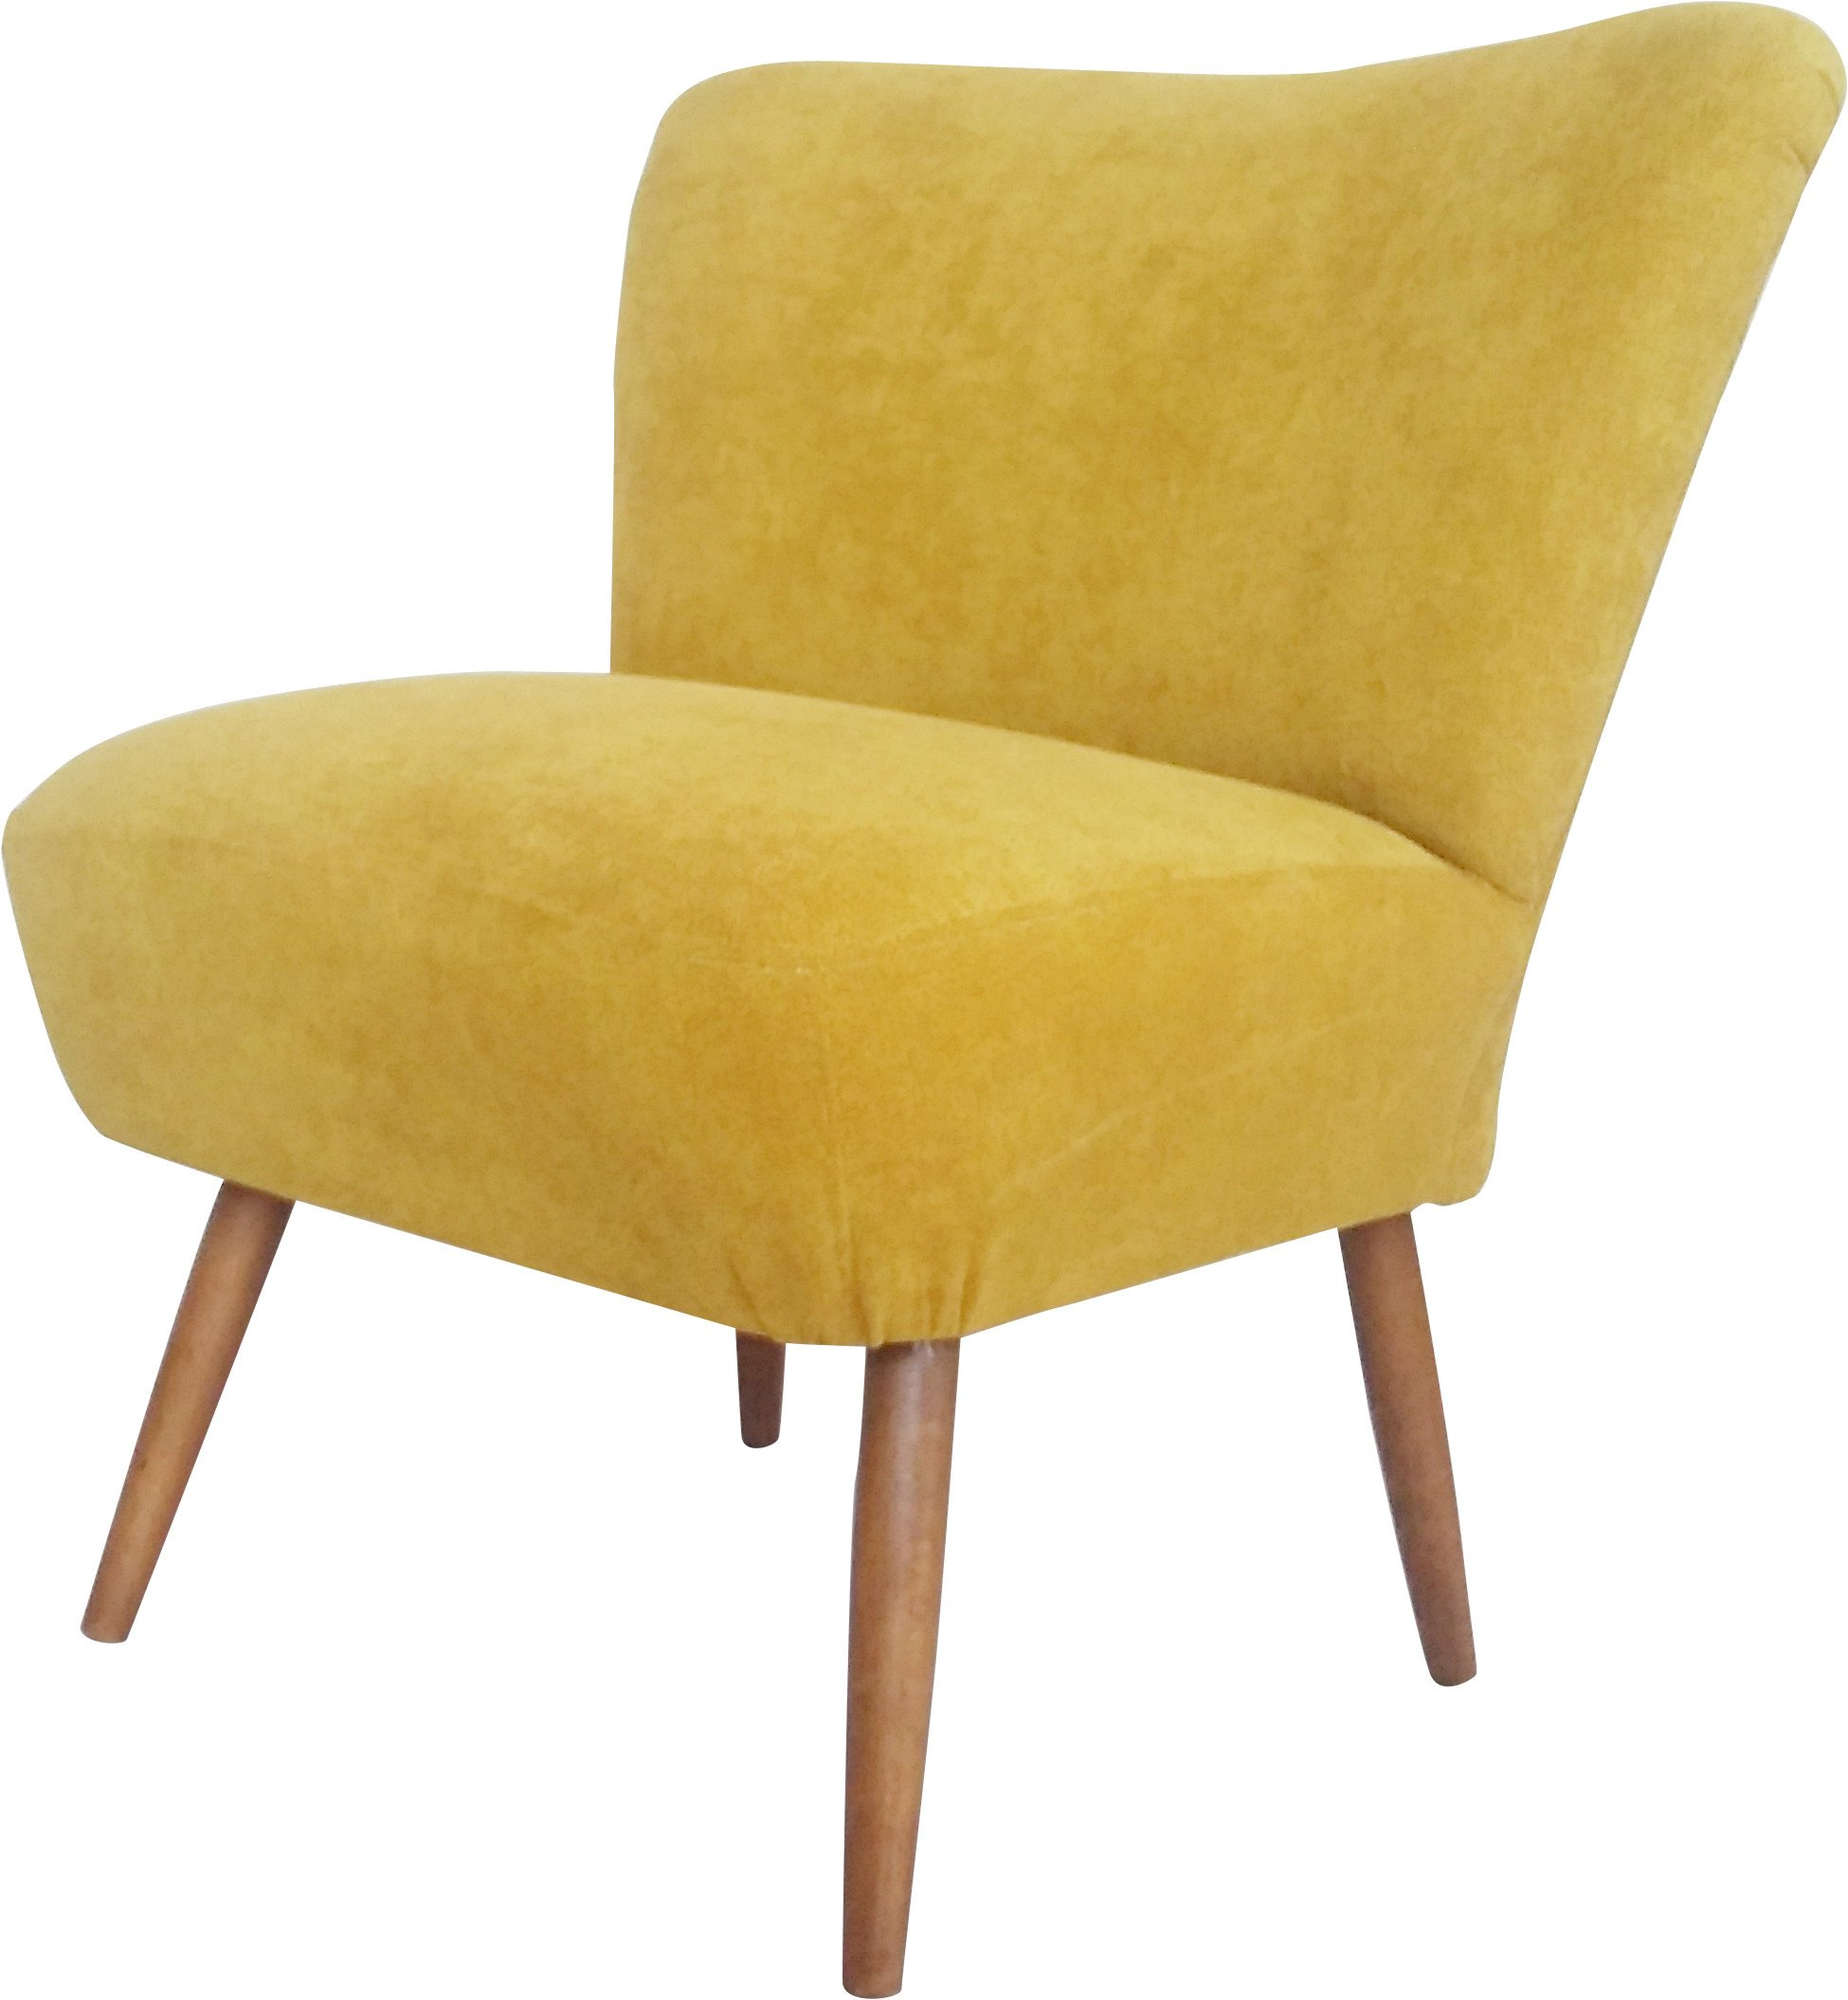 Armchair, Germany, 1960s